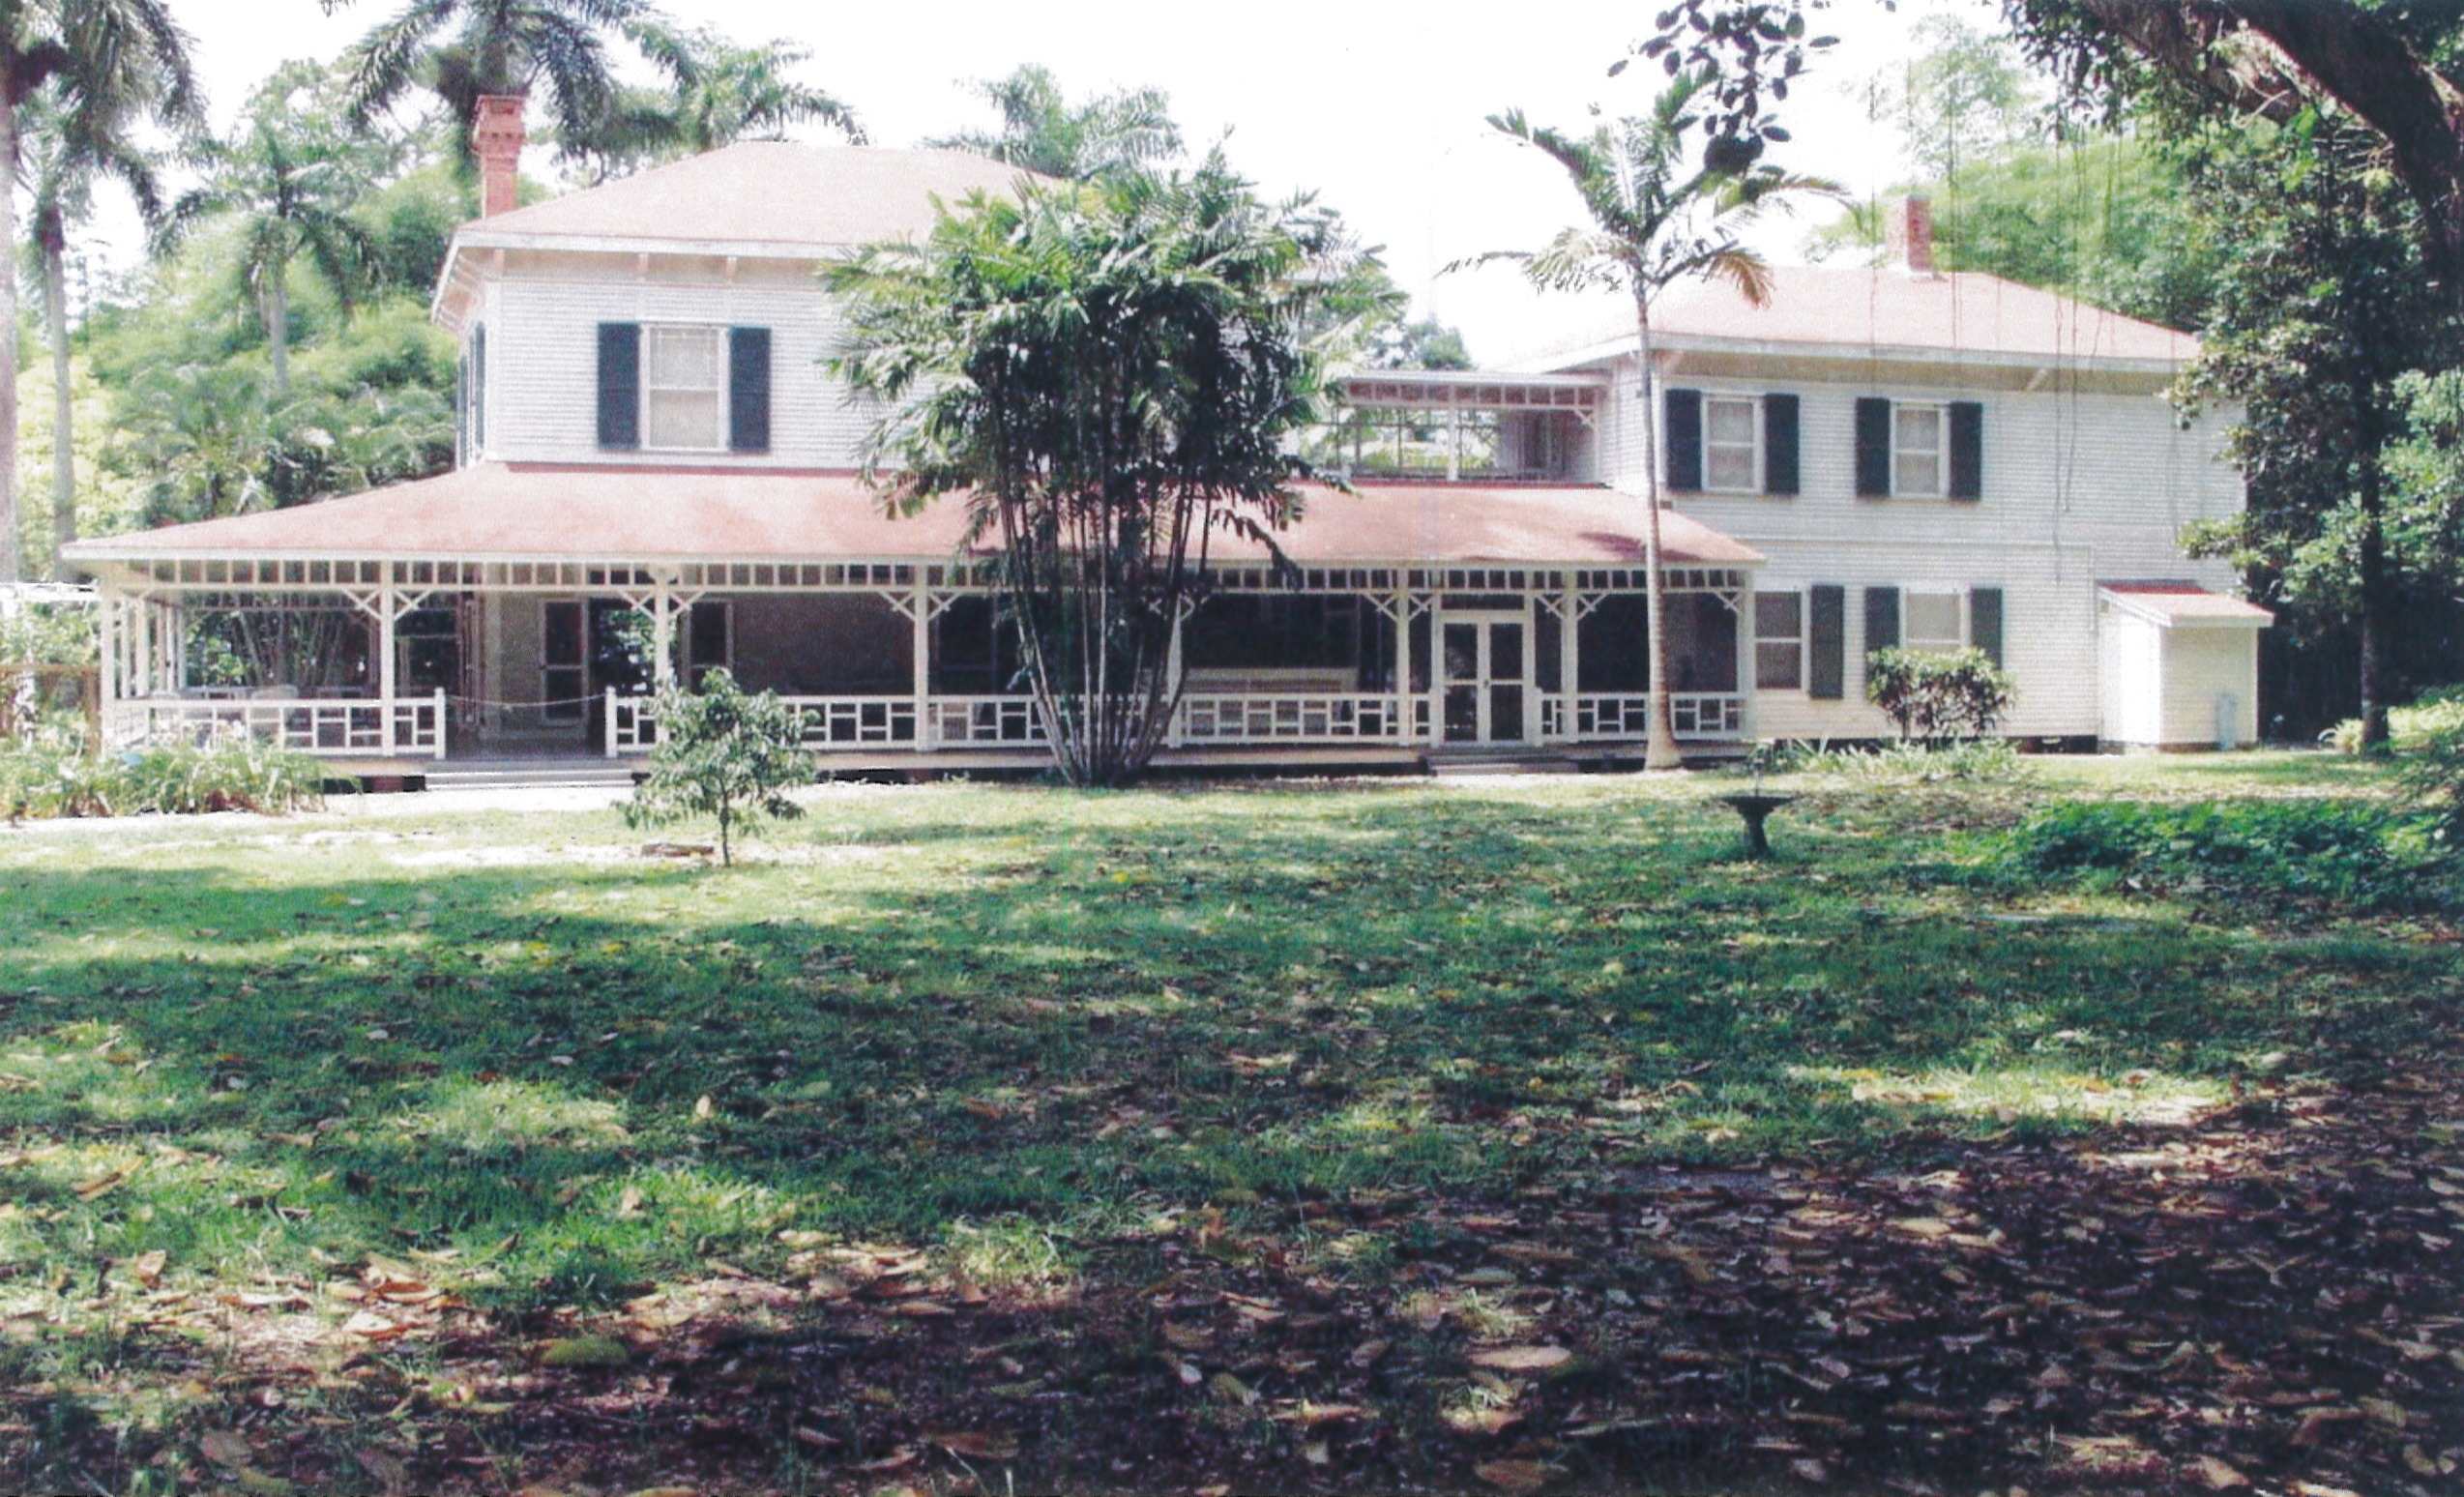 The Main House at Thomas Edison's winter estate in Fort Myers. The complex also includes a guest house and a laboratory.